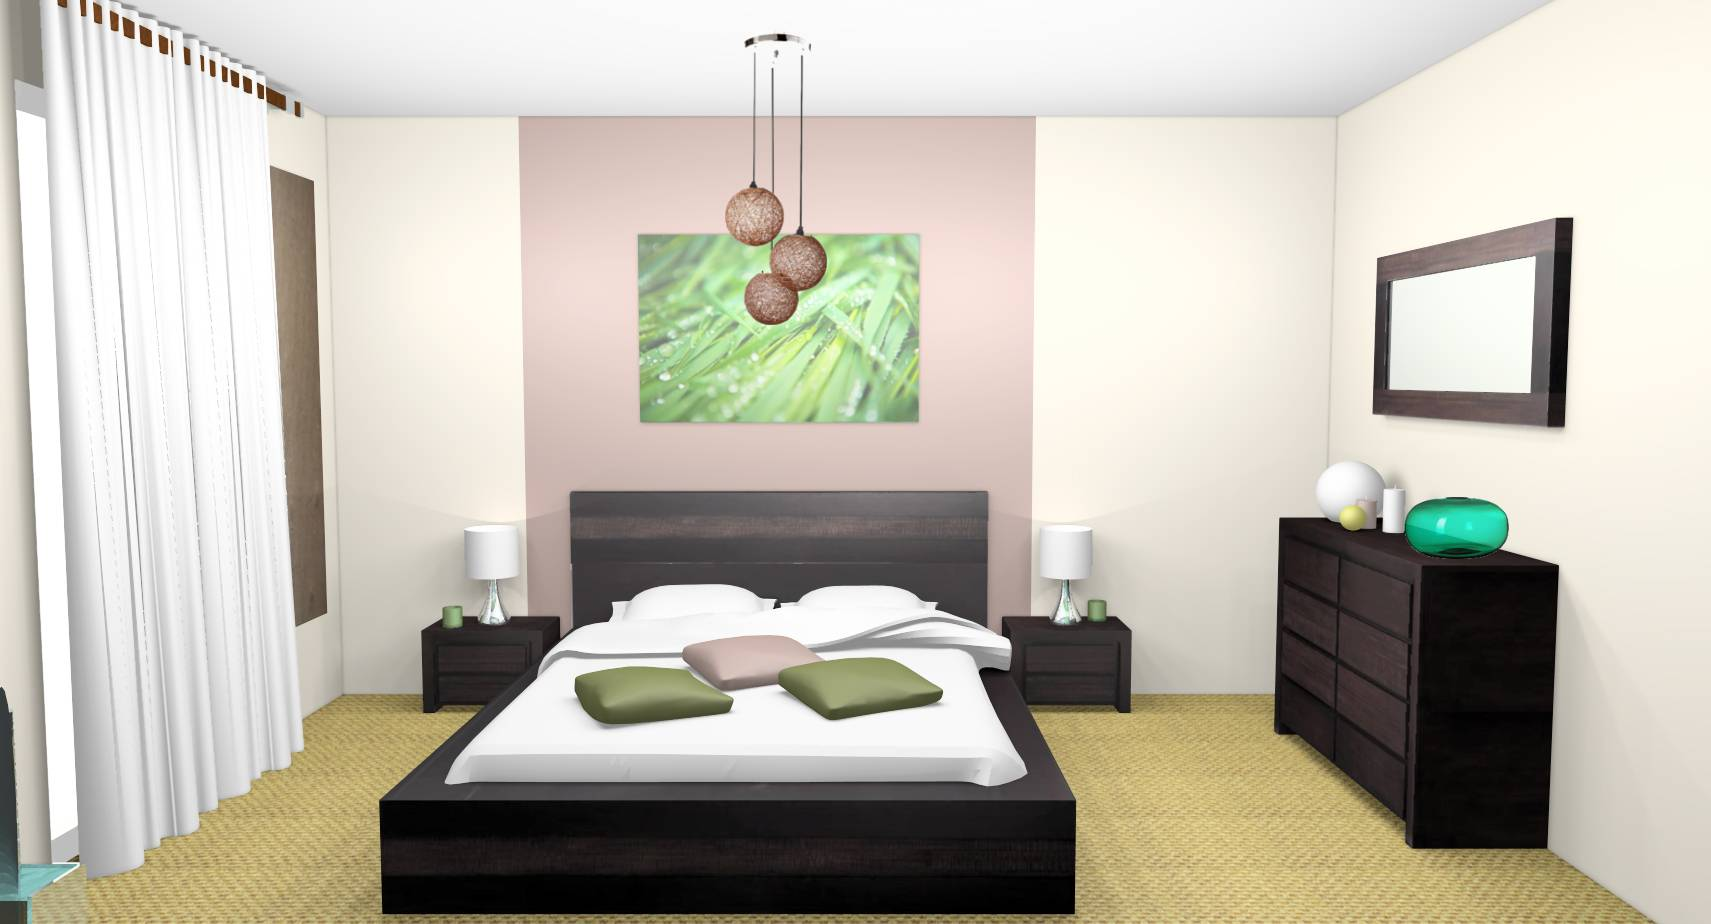 D coration chambre adulte zen for Decoration chambre zen attitude